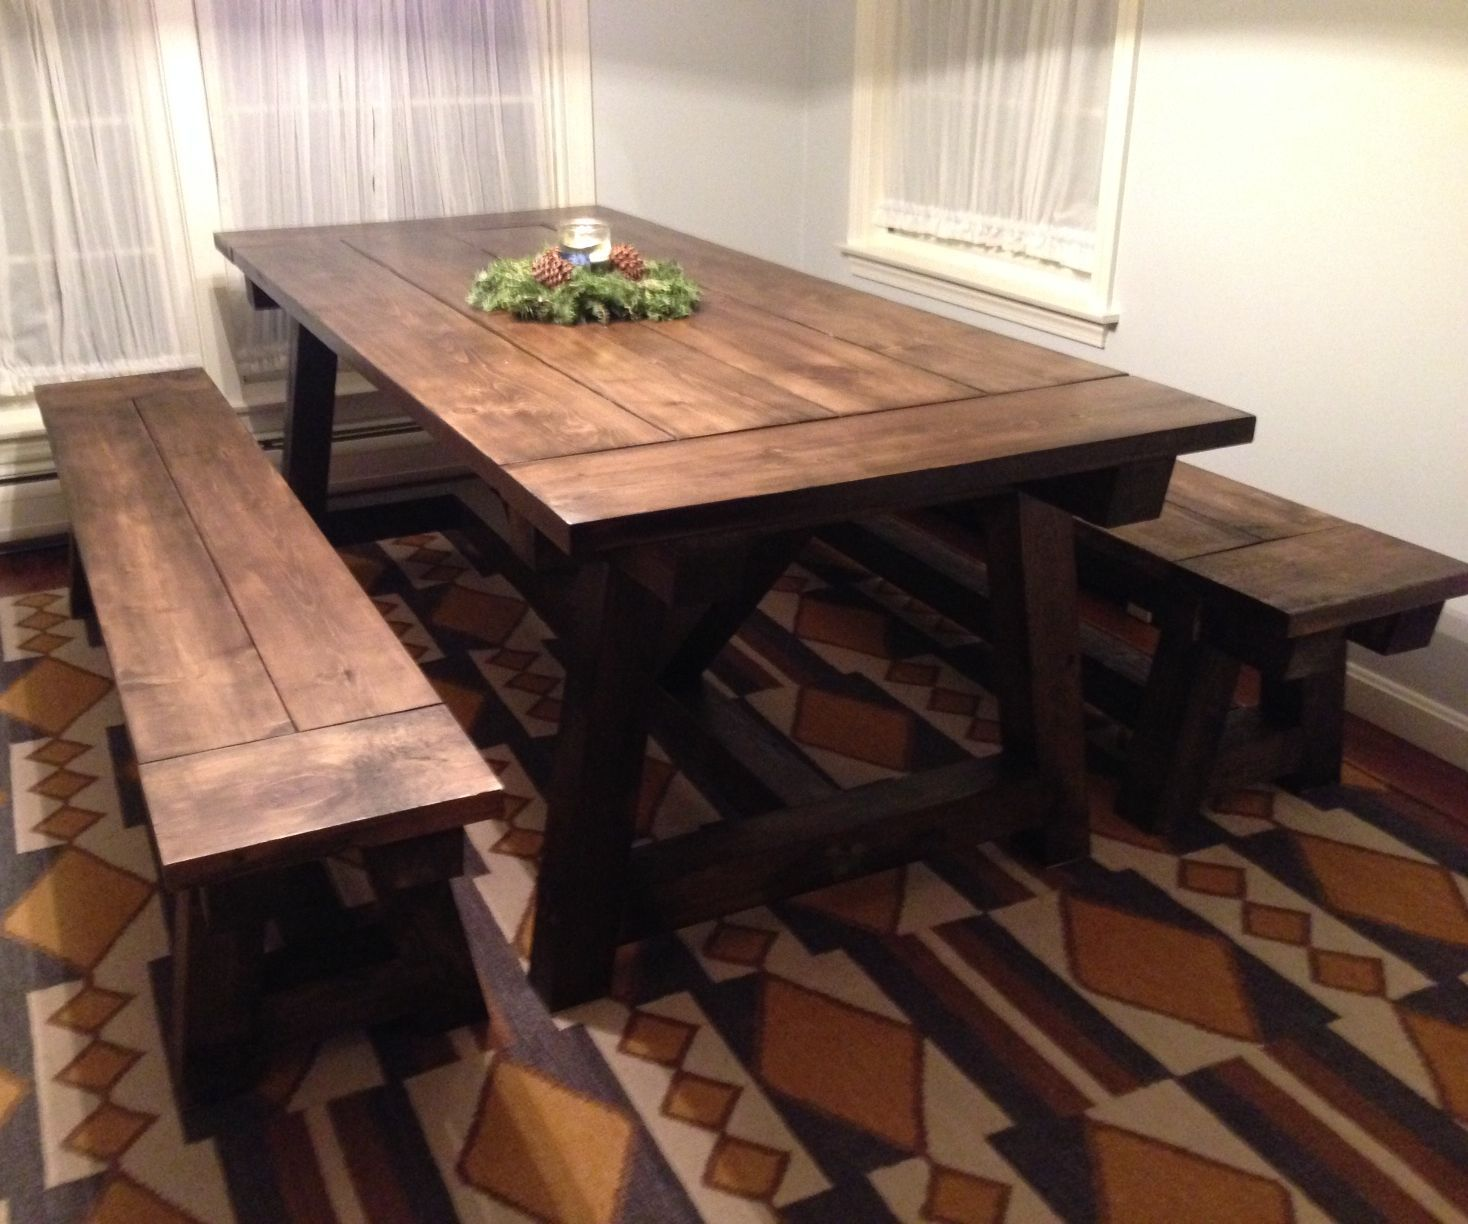 We Built A Rustic Farmhouse Table For Our Dining Room In This Instructable Ill List Out The Steps Building Benches That Went With